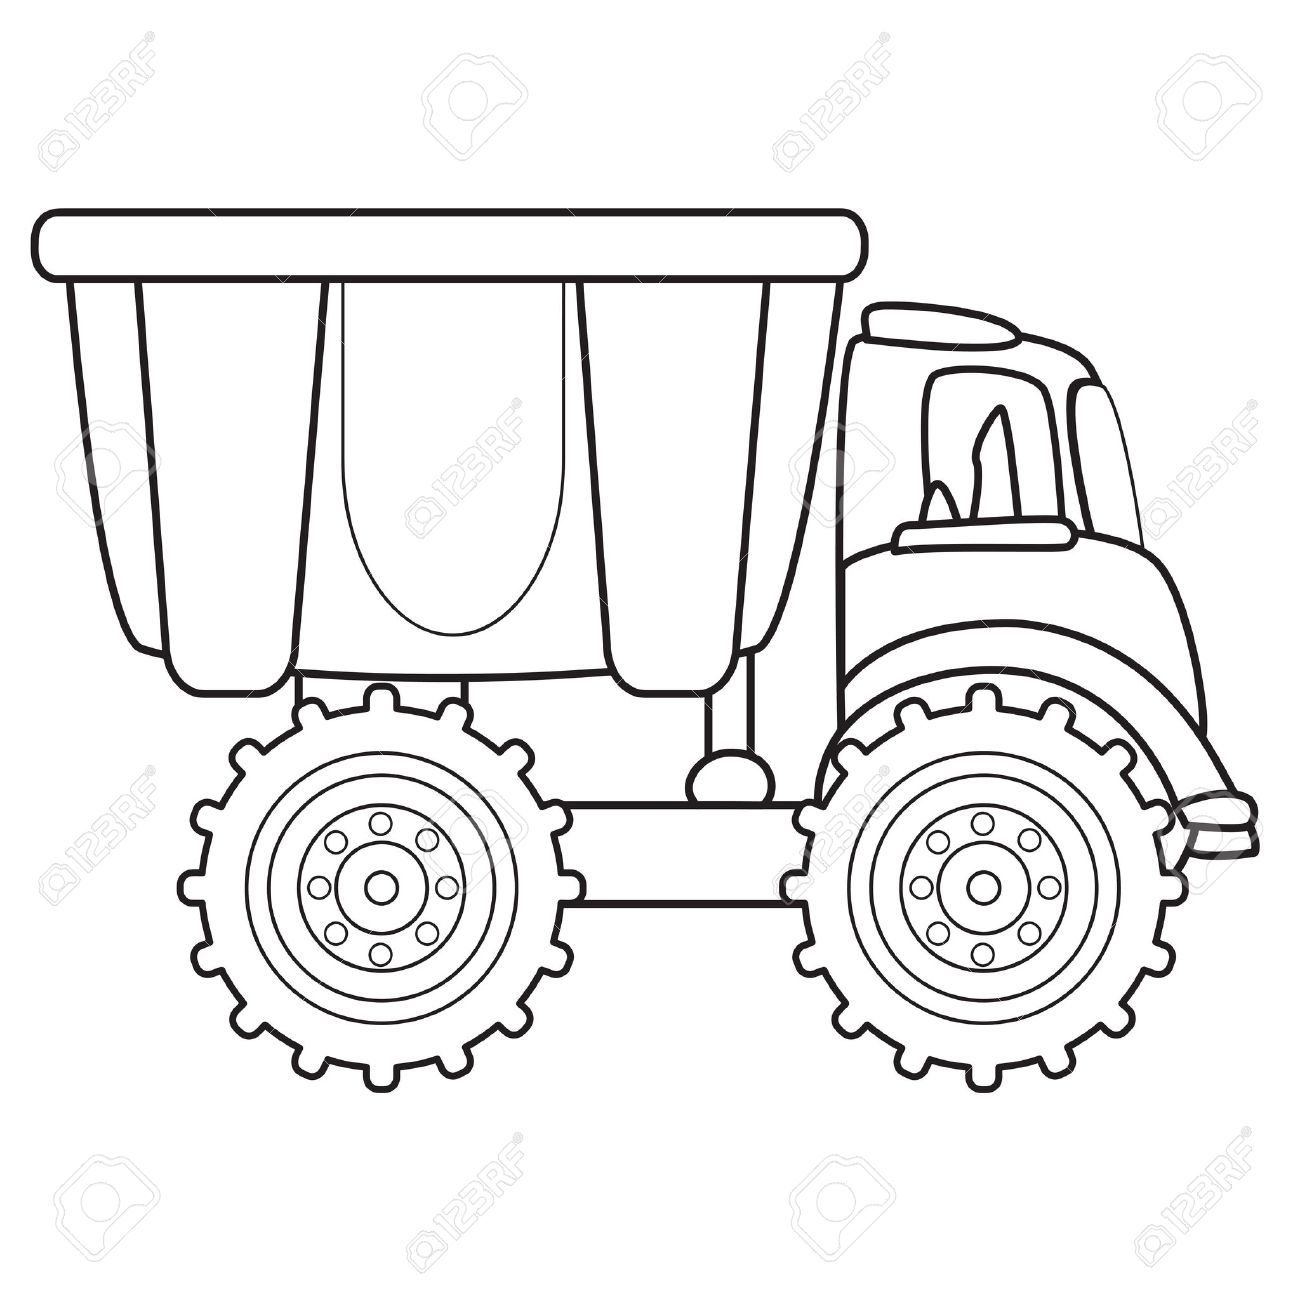 cartoon dump truck stock photos royalty free cartoon dump truck